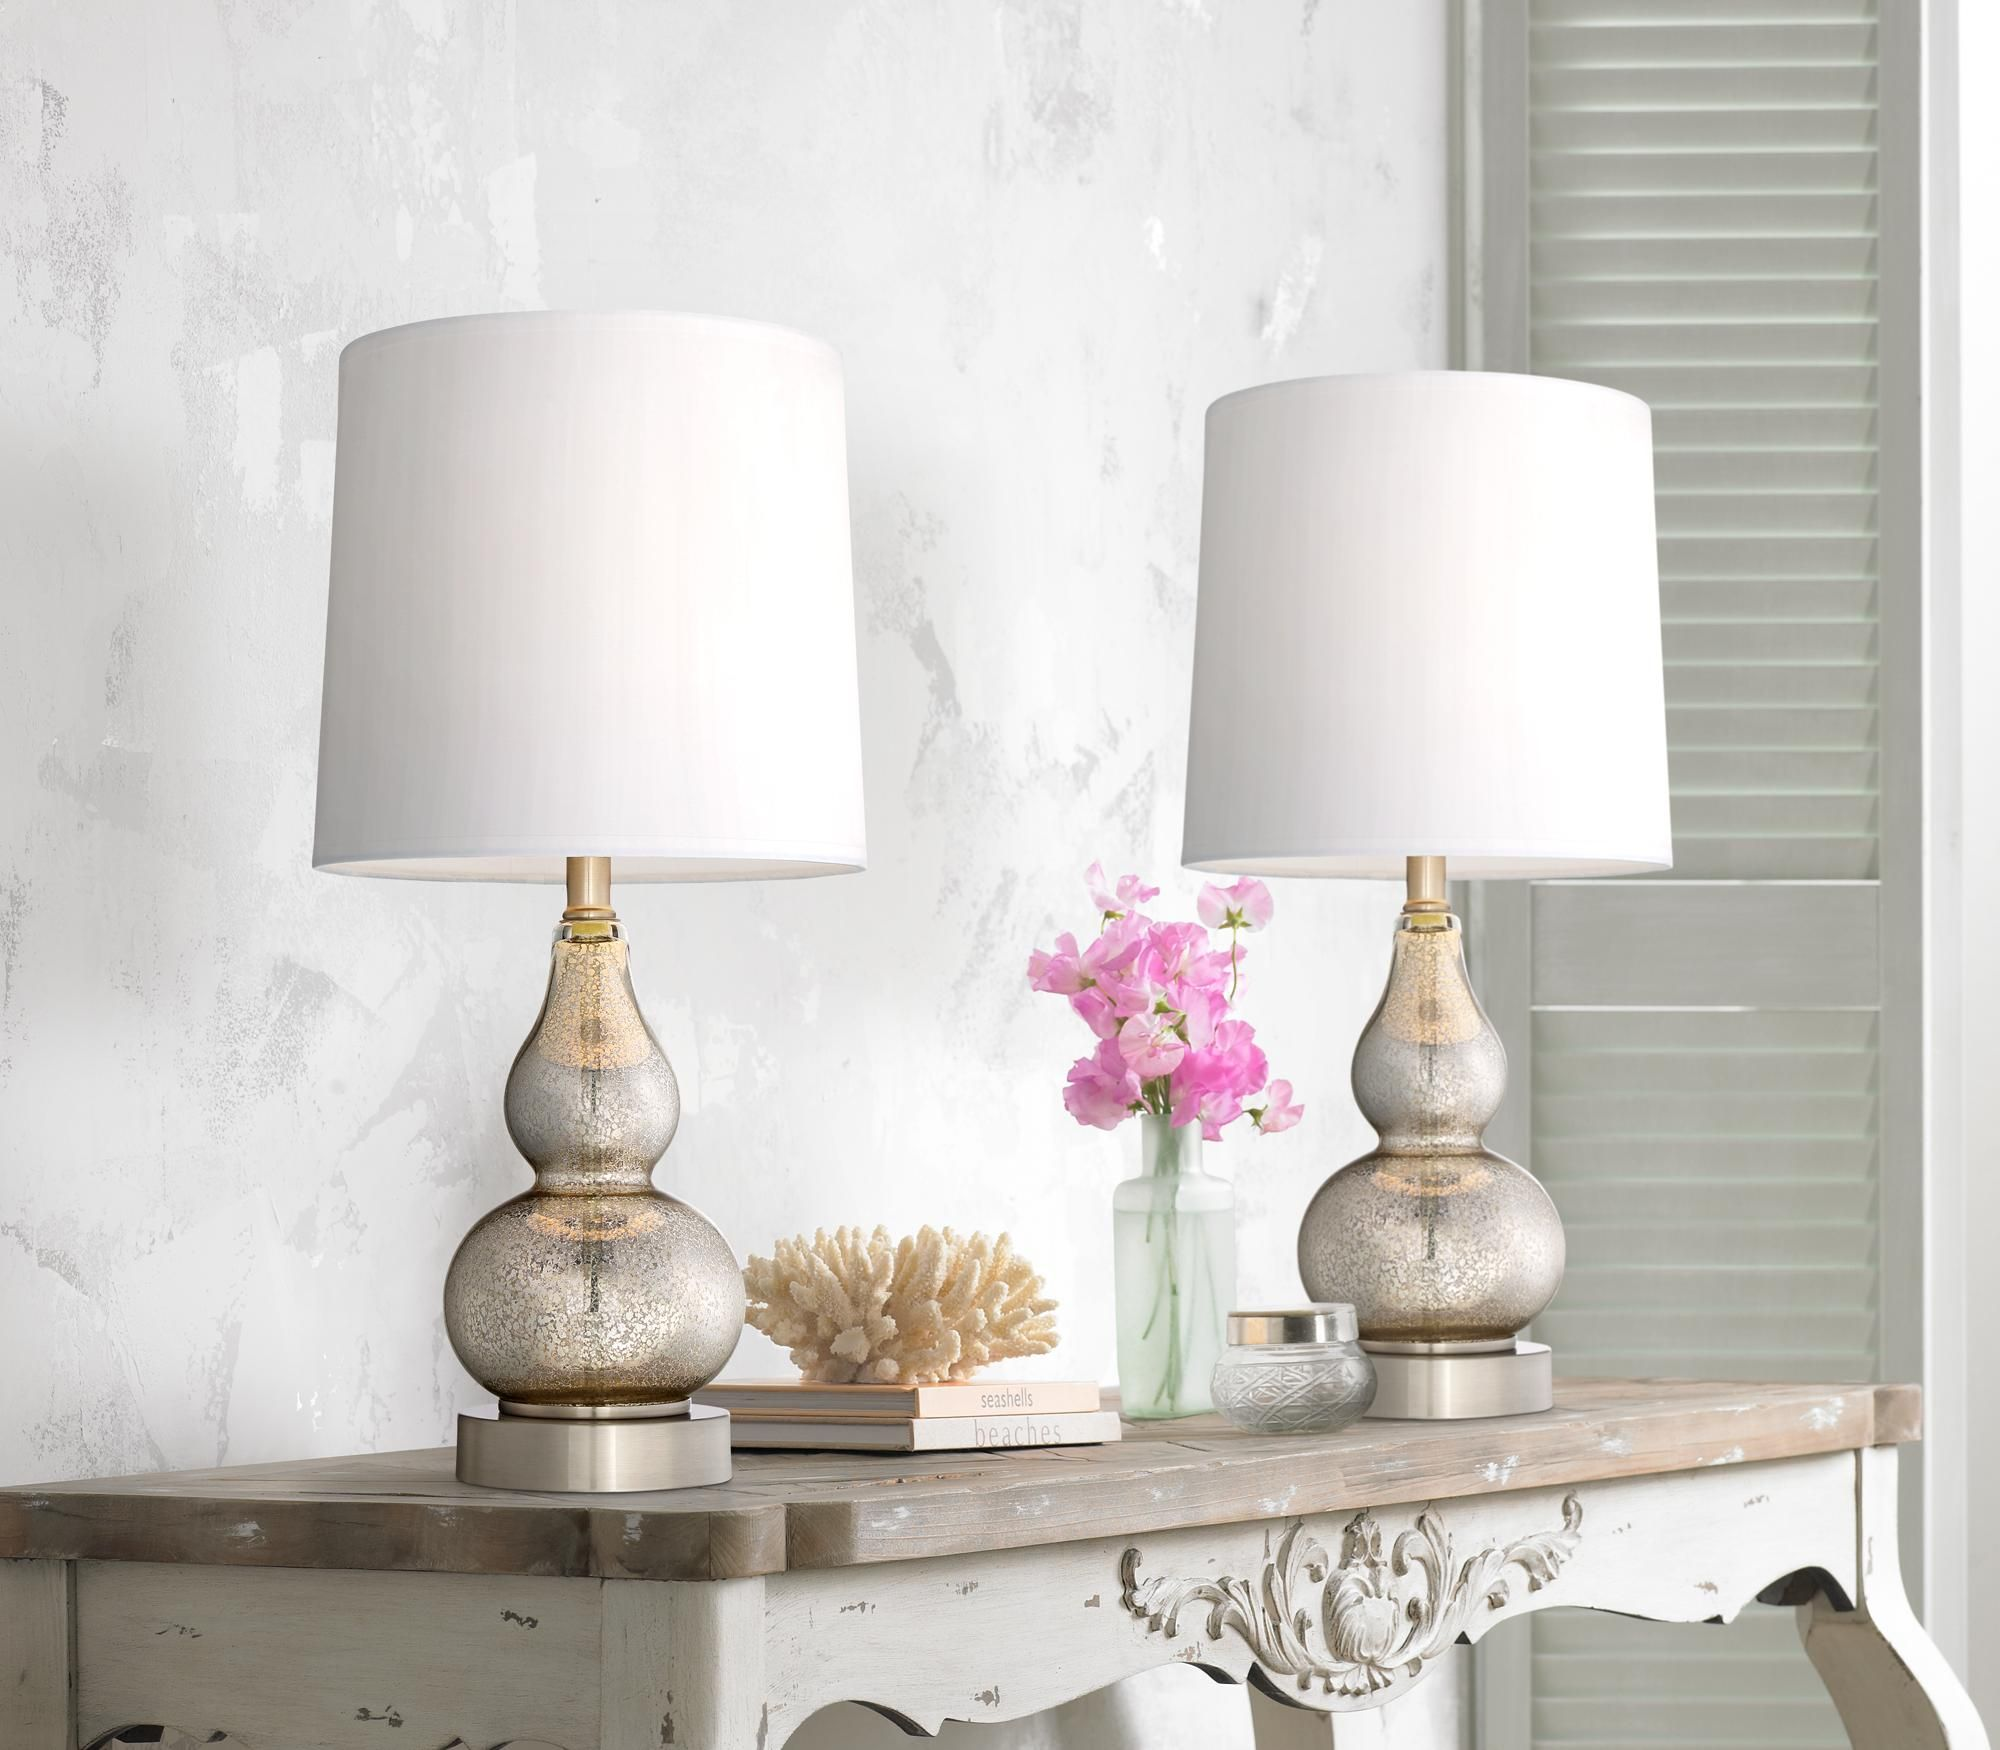 Set of 2 Castine Mercury Glass Table Lamps with USB Port Style